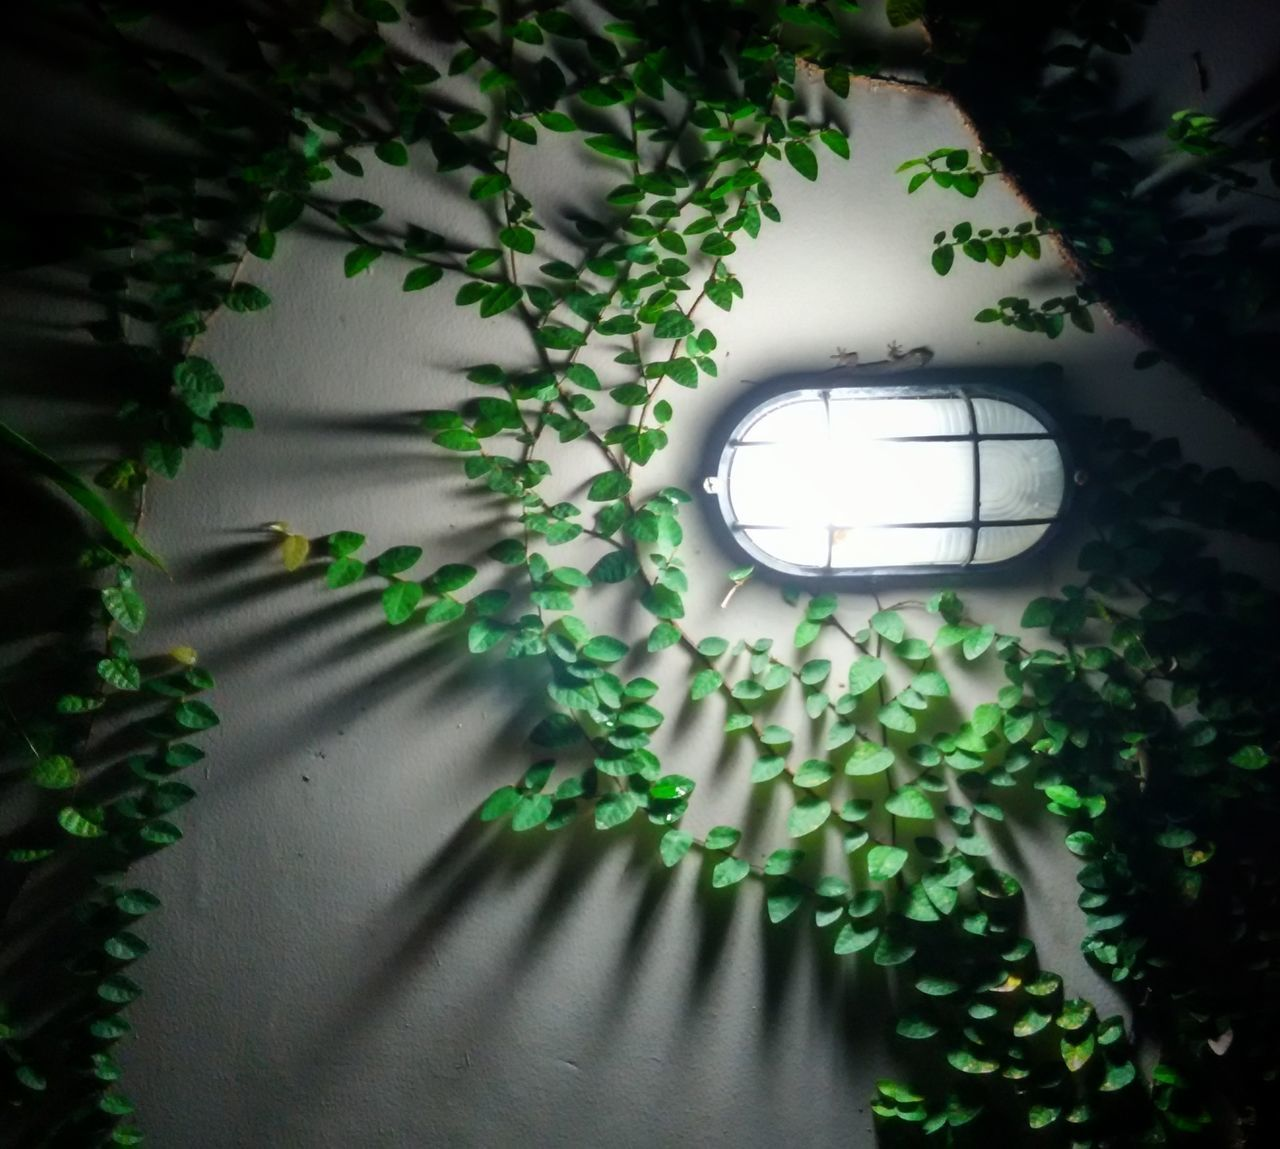 green color, plant, growth, ivy, window, tree, leaf, no people, indoors, day, nature, hanging, electricity, shadow, illuminated, fragility, close-up